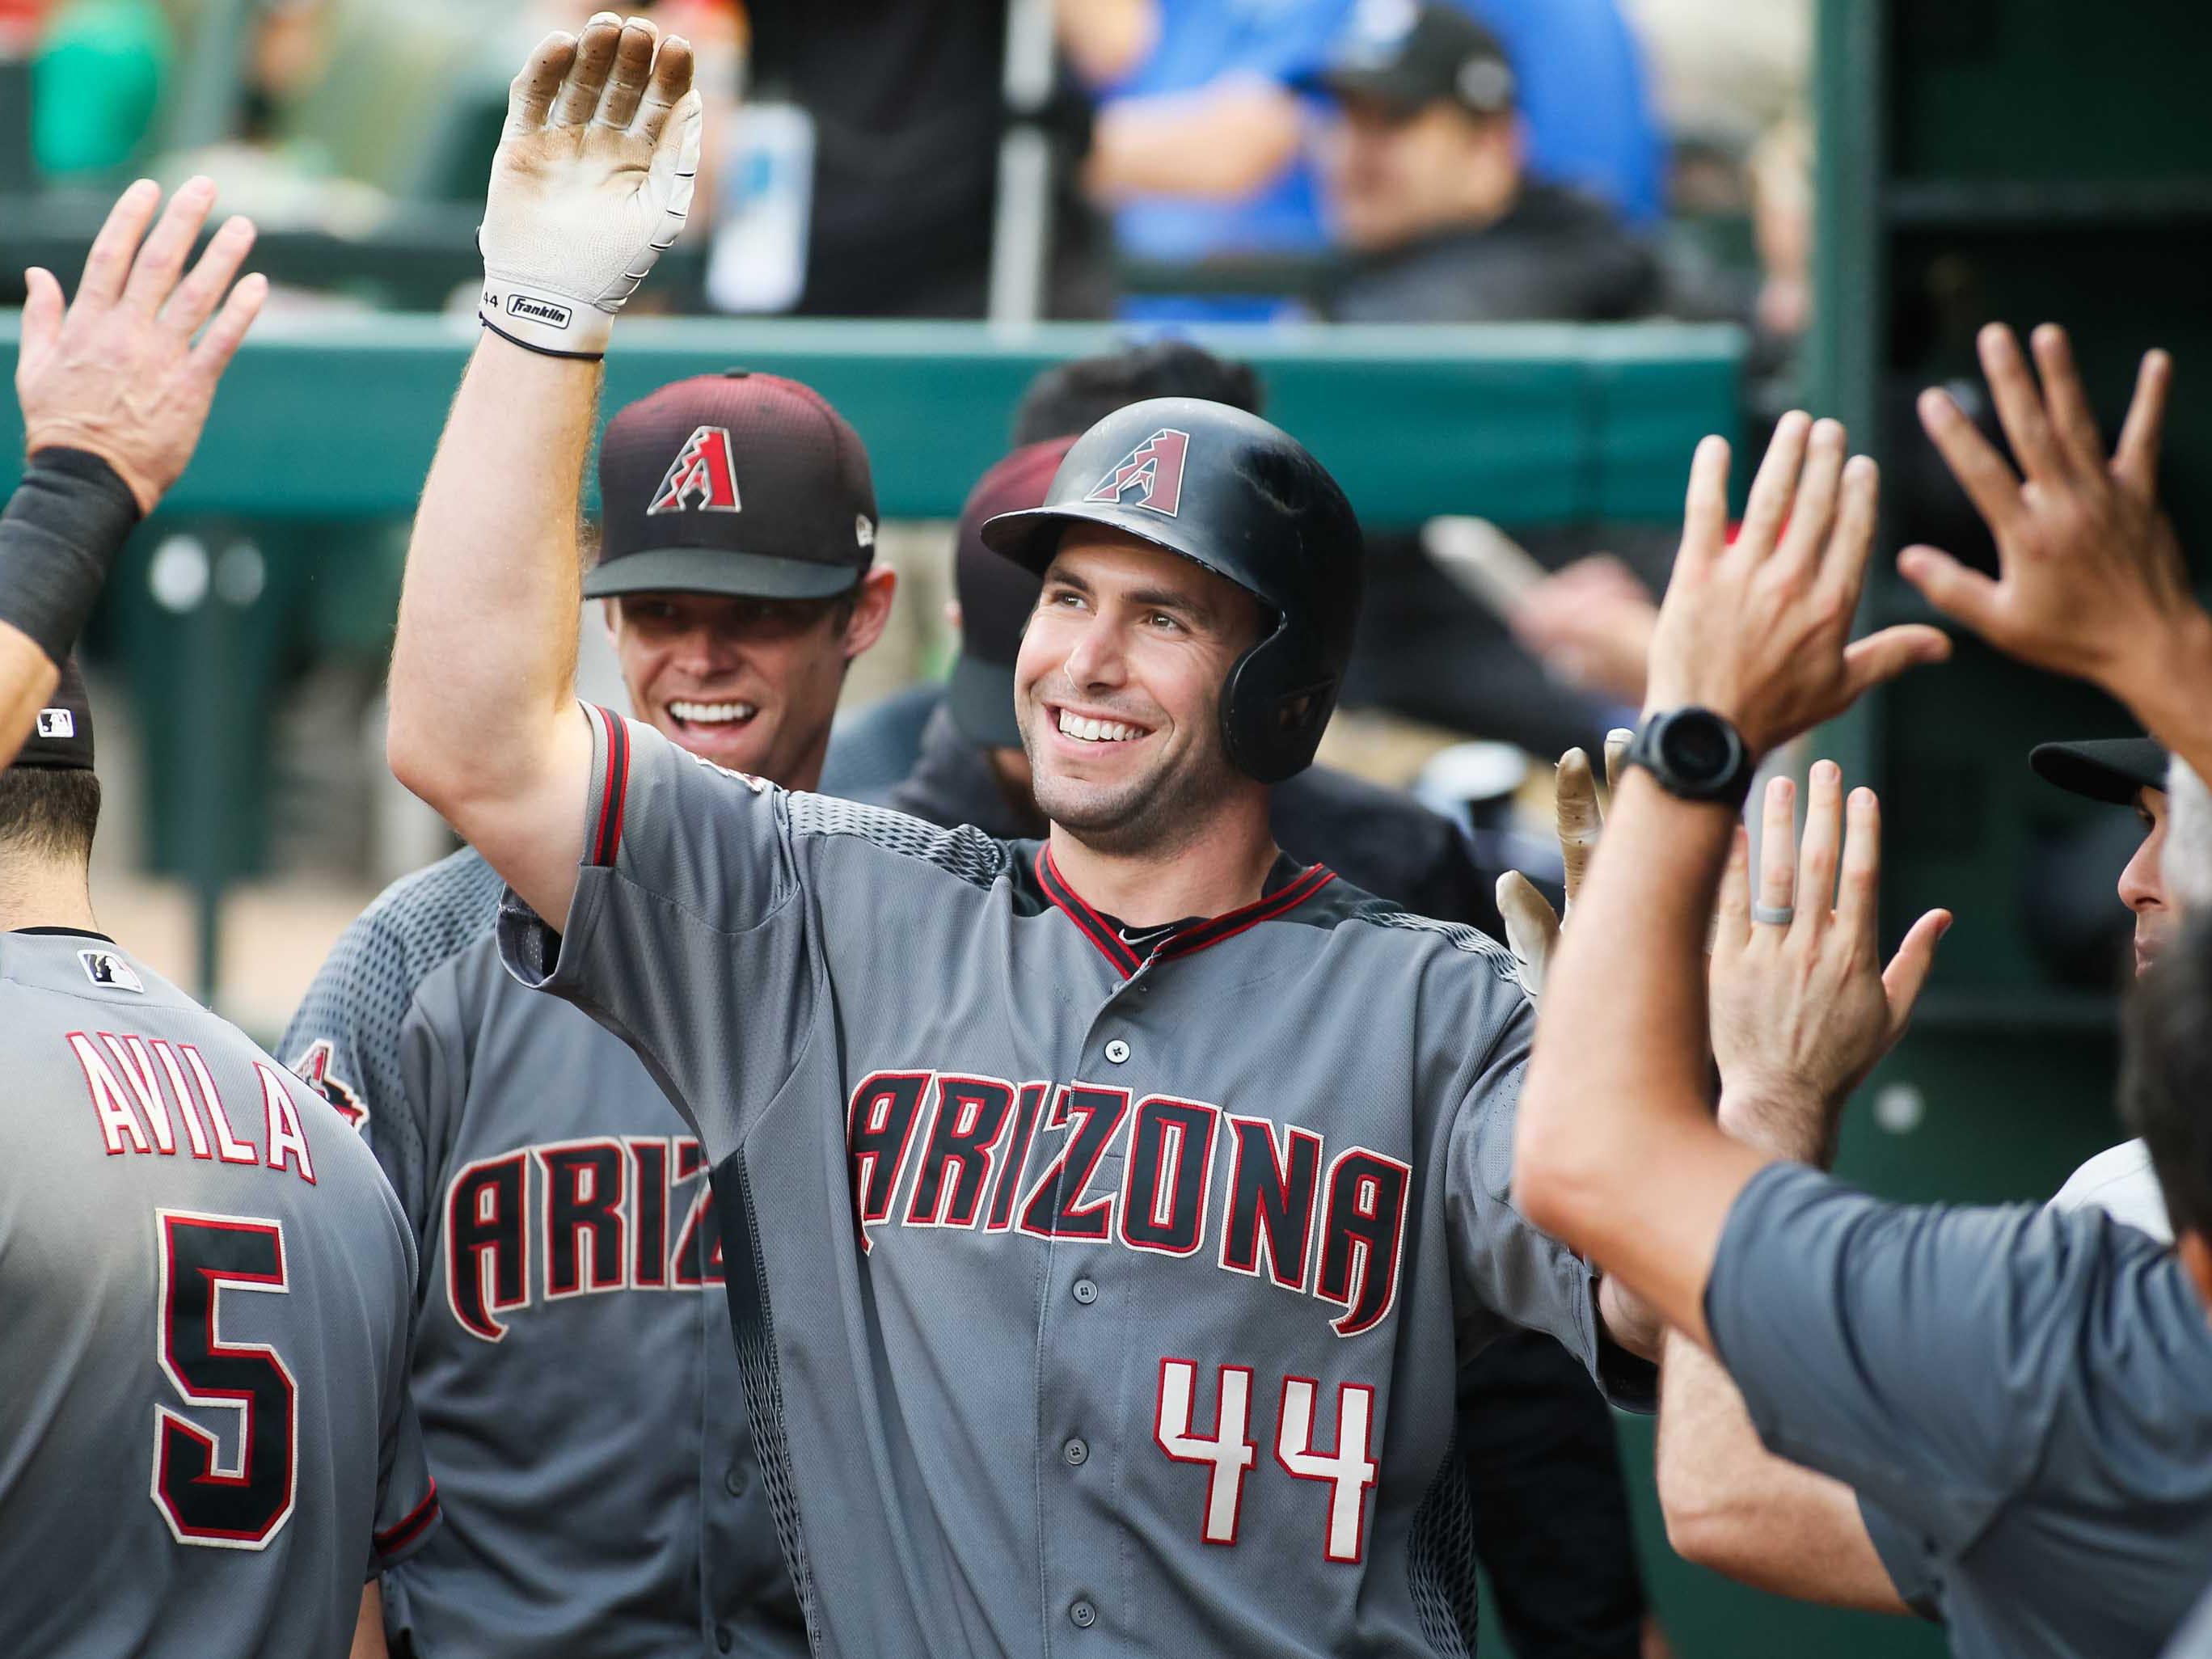 Aug 13, 2018; Arlington, TX, USA; Arizona Diamondbacks first baseman Paul Goldschmidt (44) is greeted in the dugout after scoring in the first inning against the Texas Rangers at Globe Life Park in Arlington. Mandatory Credit: Ray Carlin-USA TODAY Sports